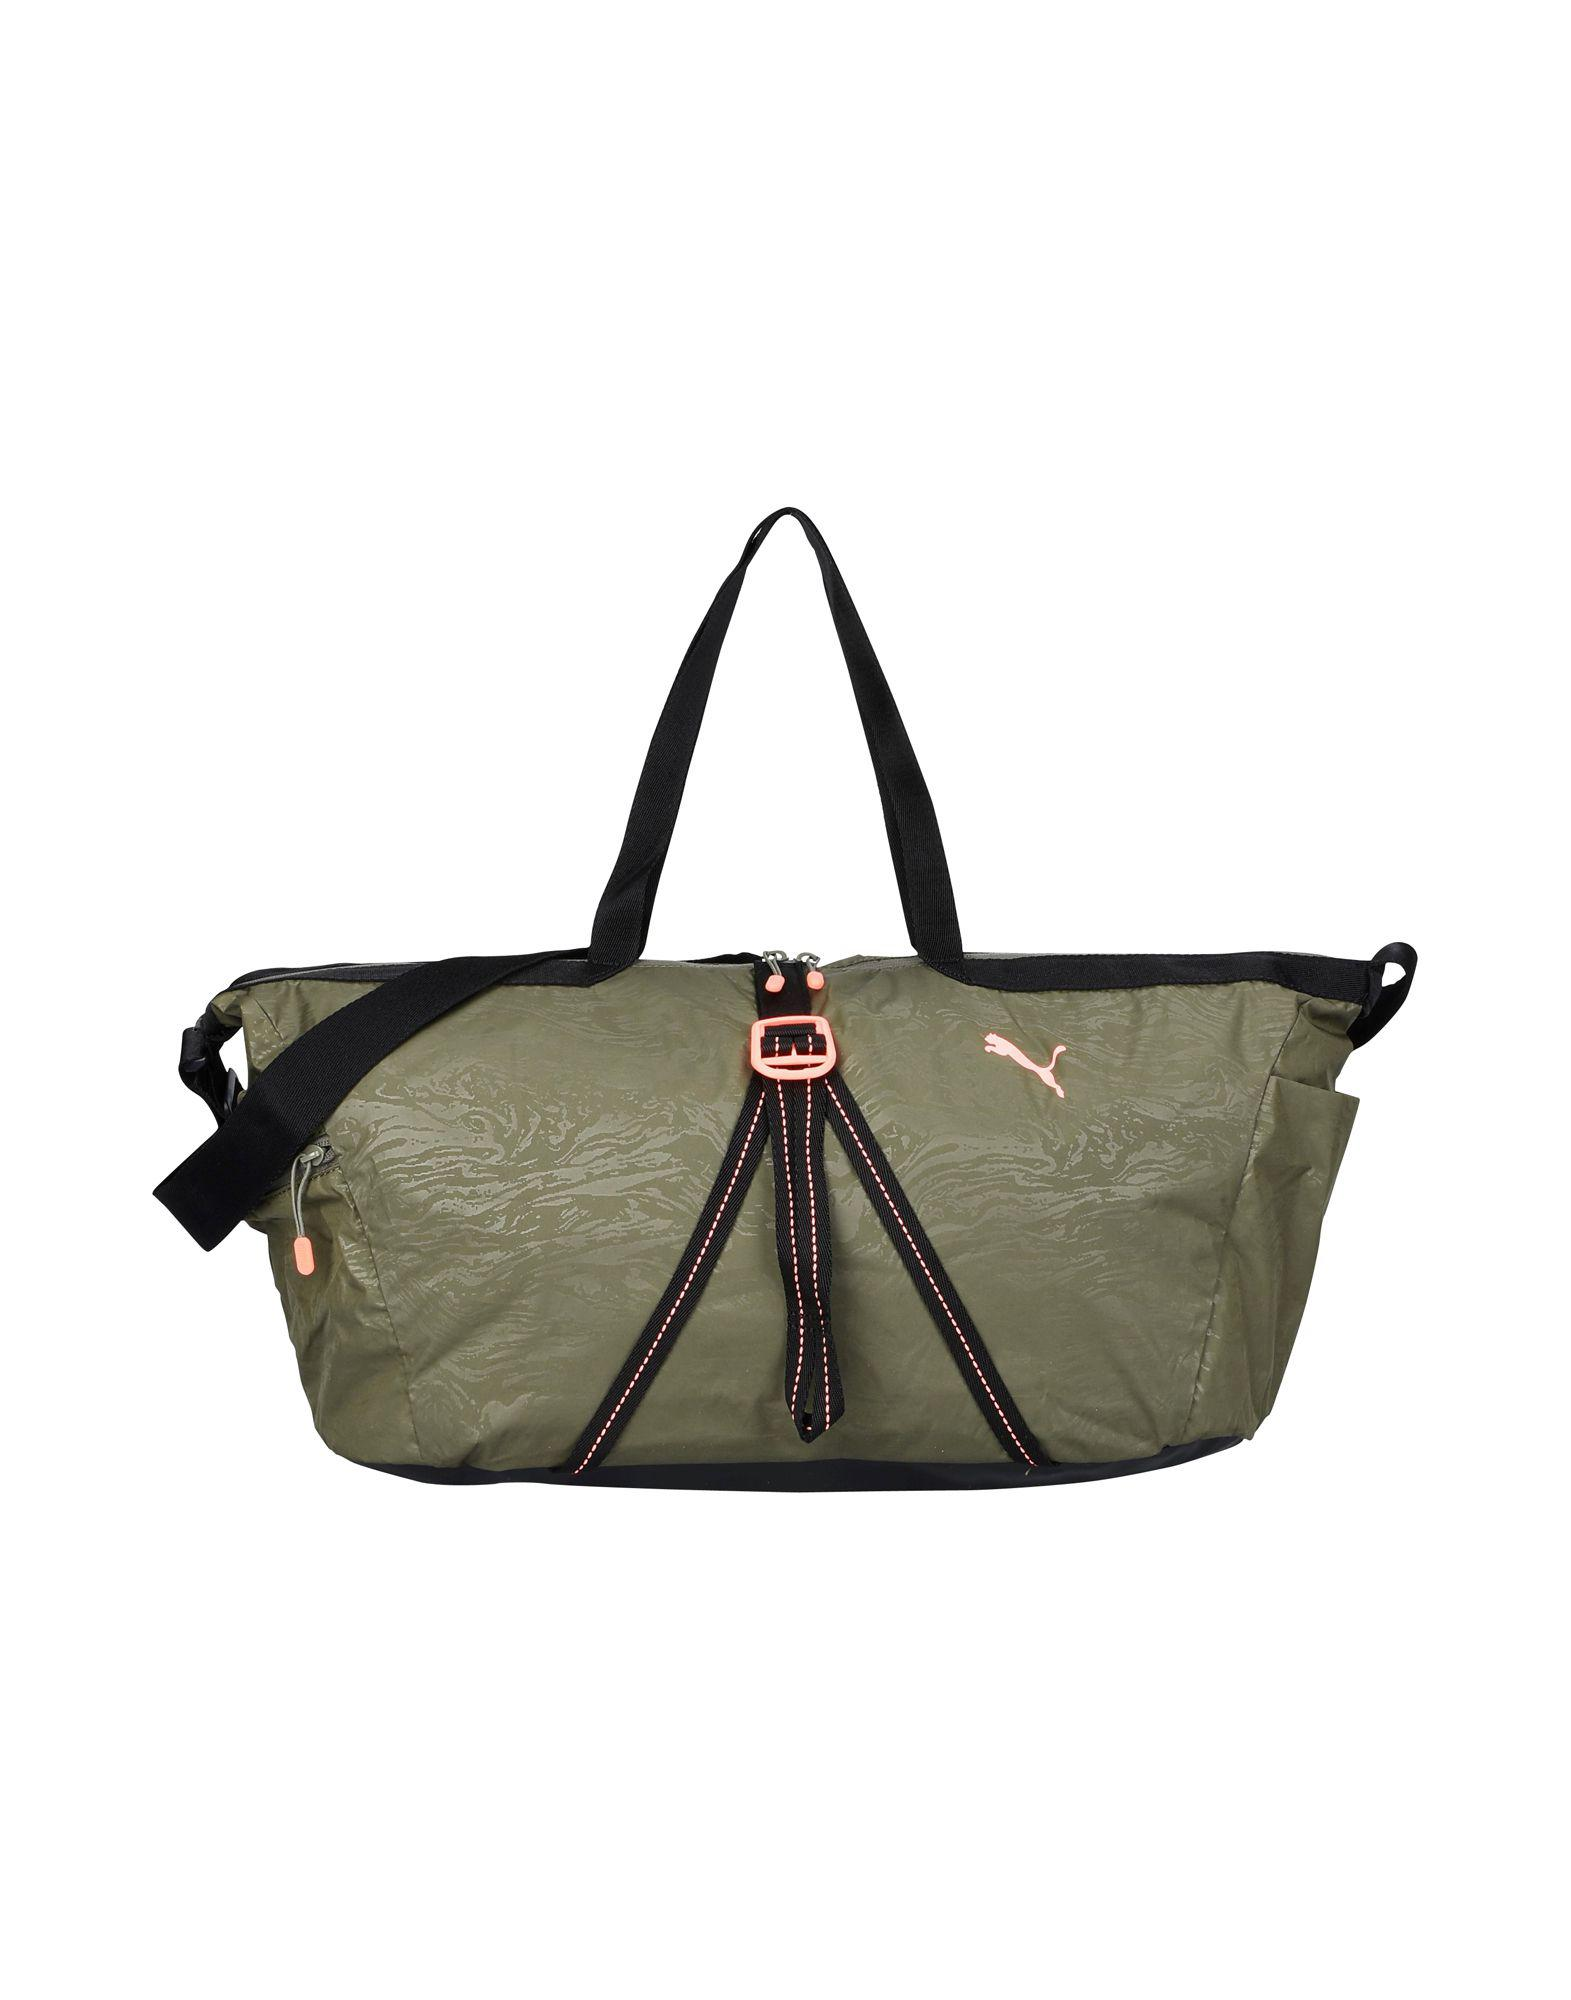 5439fb9820 PUMA Luggage in Green - Lyst